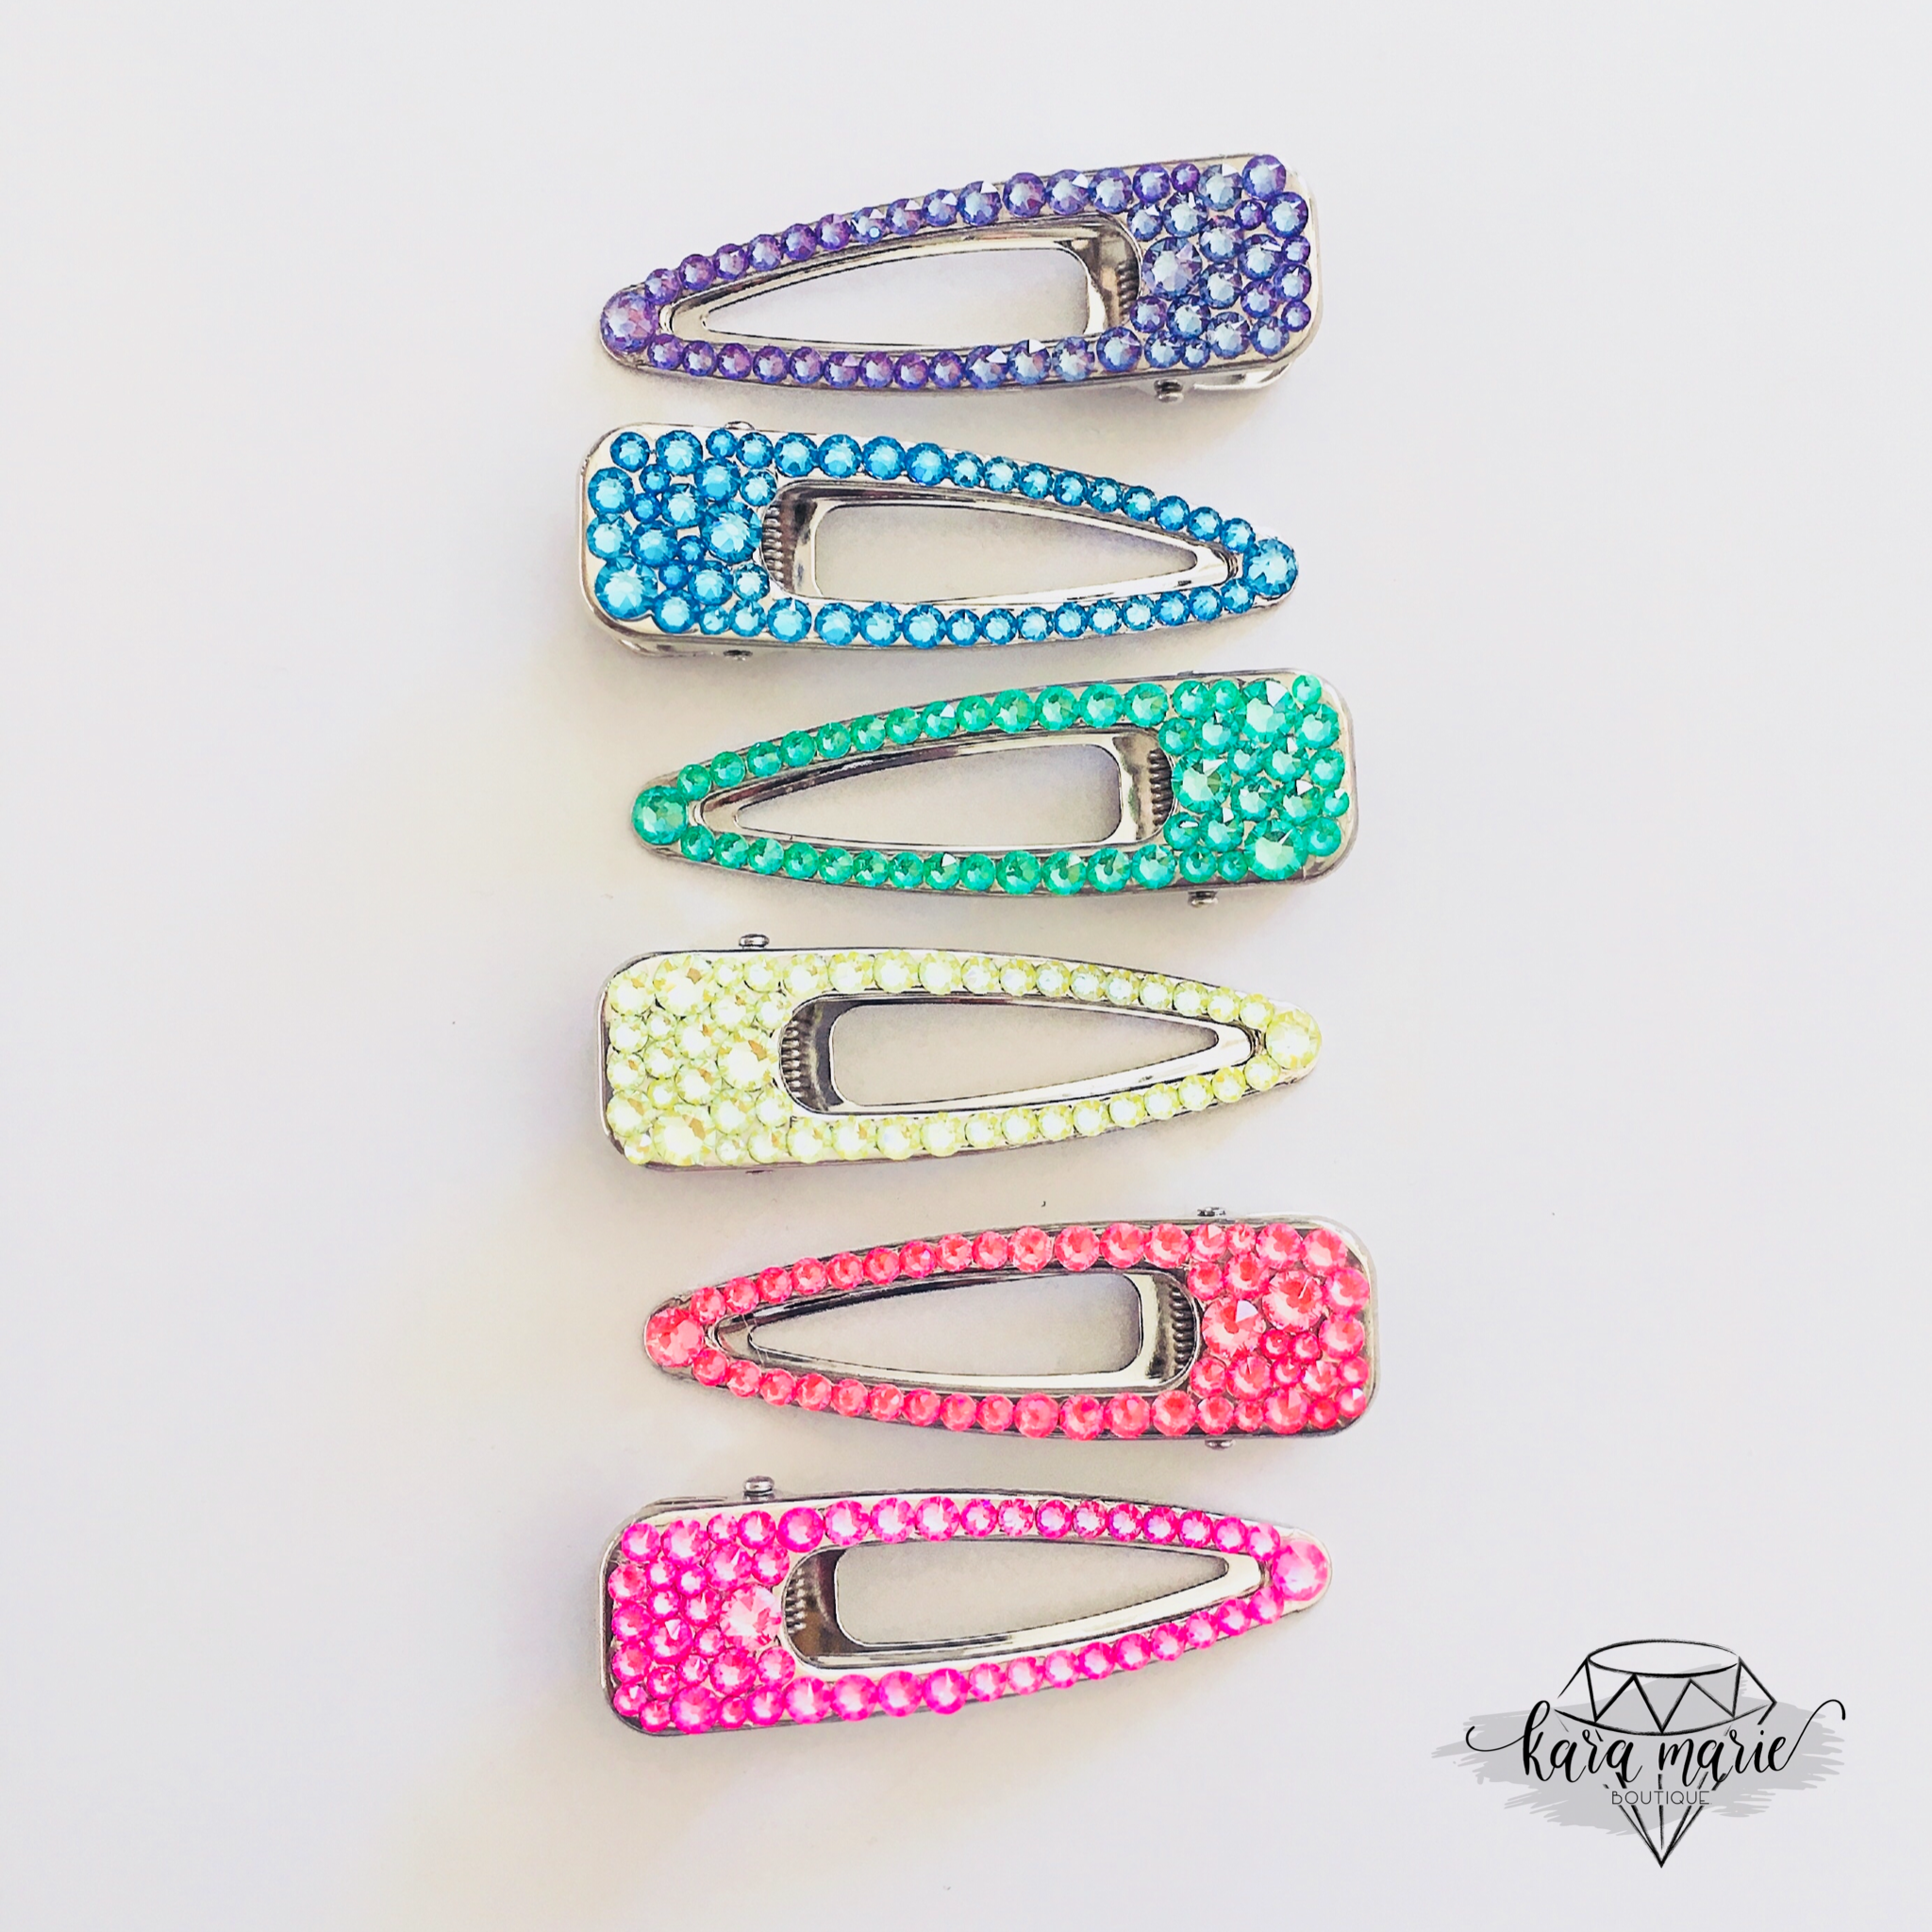 ITS ELECTRIC! Sparkly Wide OPEN MIDDLE Hair Clip - KaraMarie Exclusive! Multiple Colors! - KaraMarie Boutique